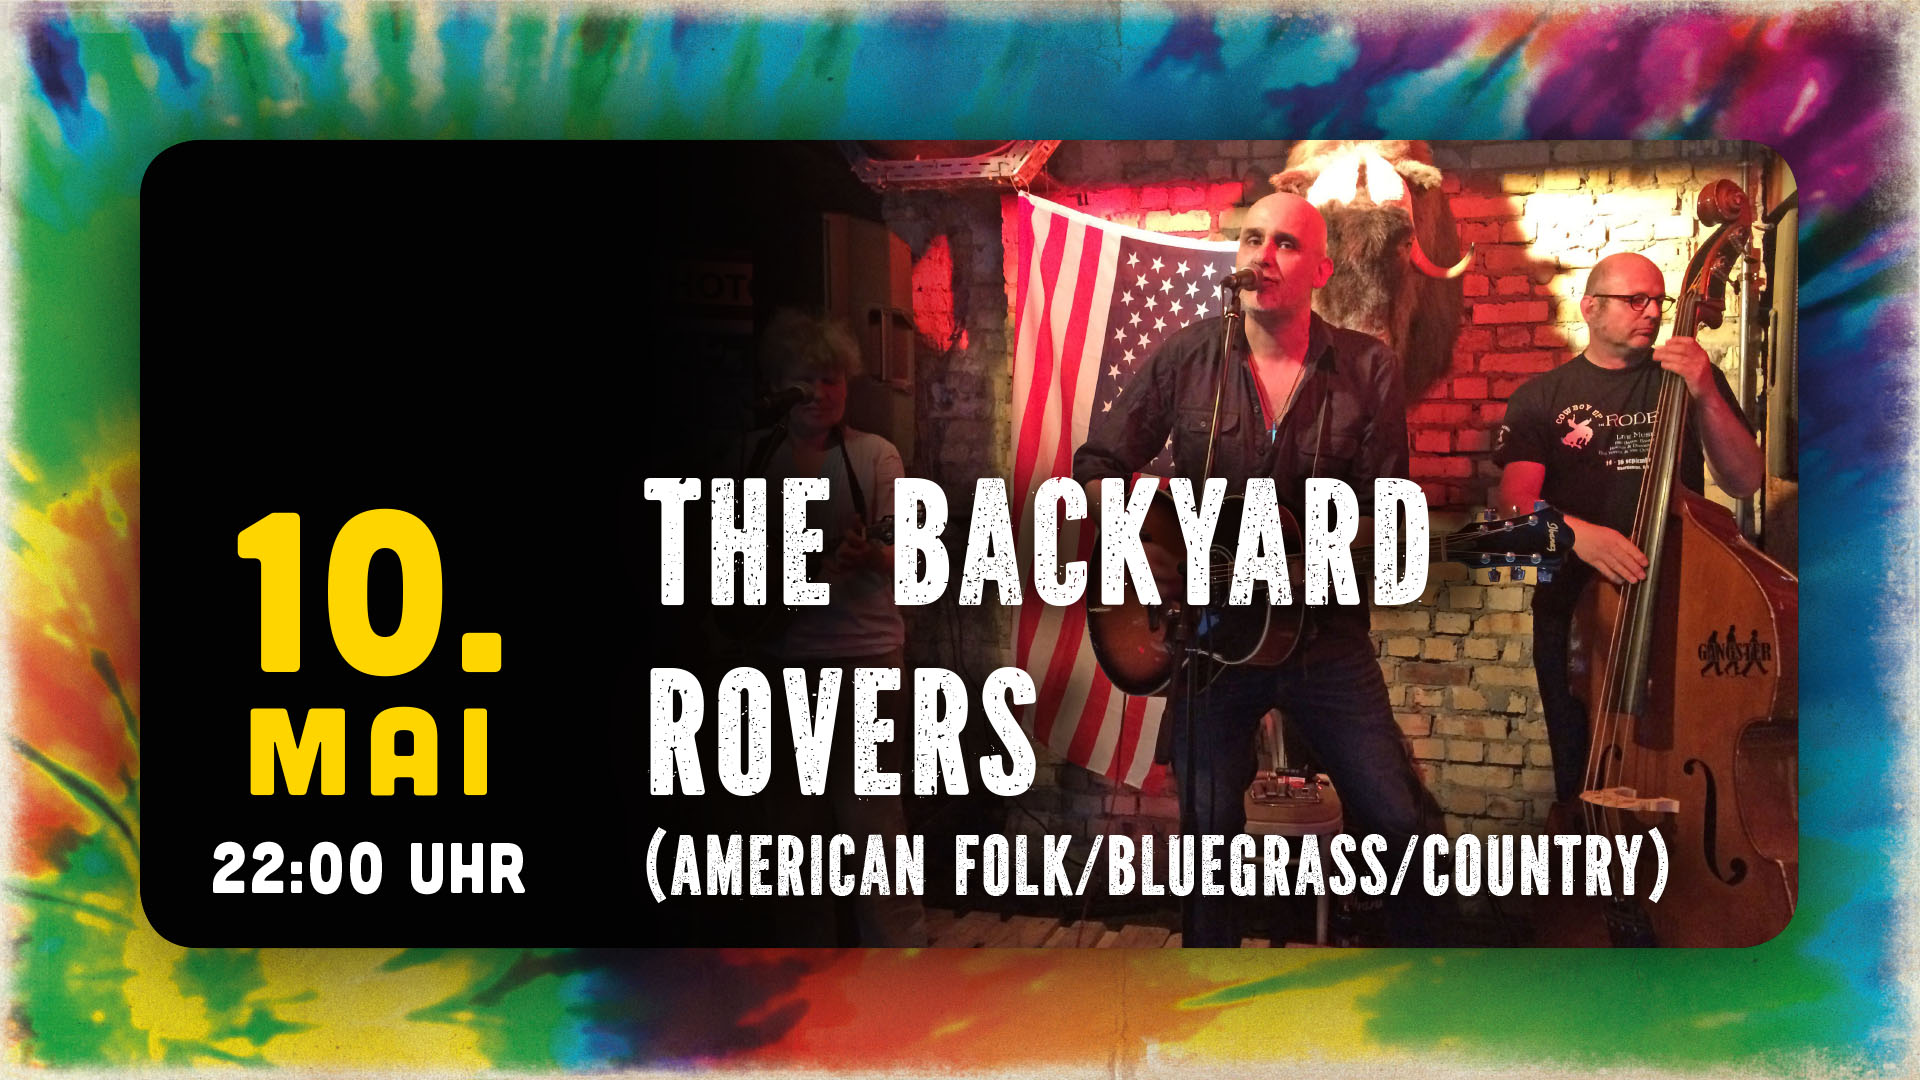 The Backyard Rovers